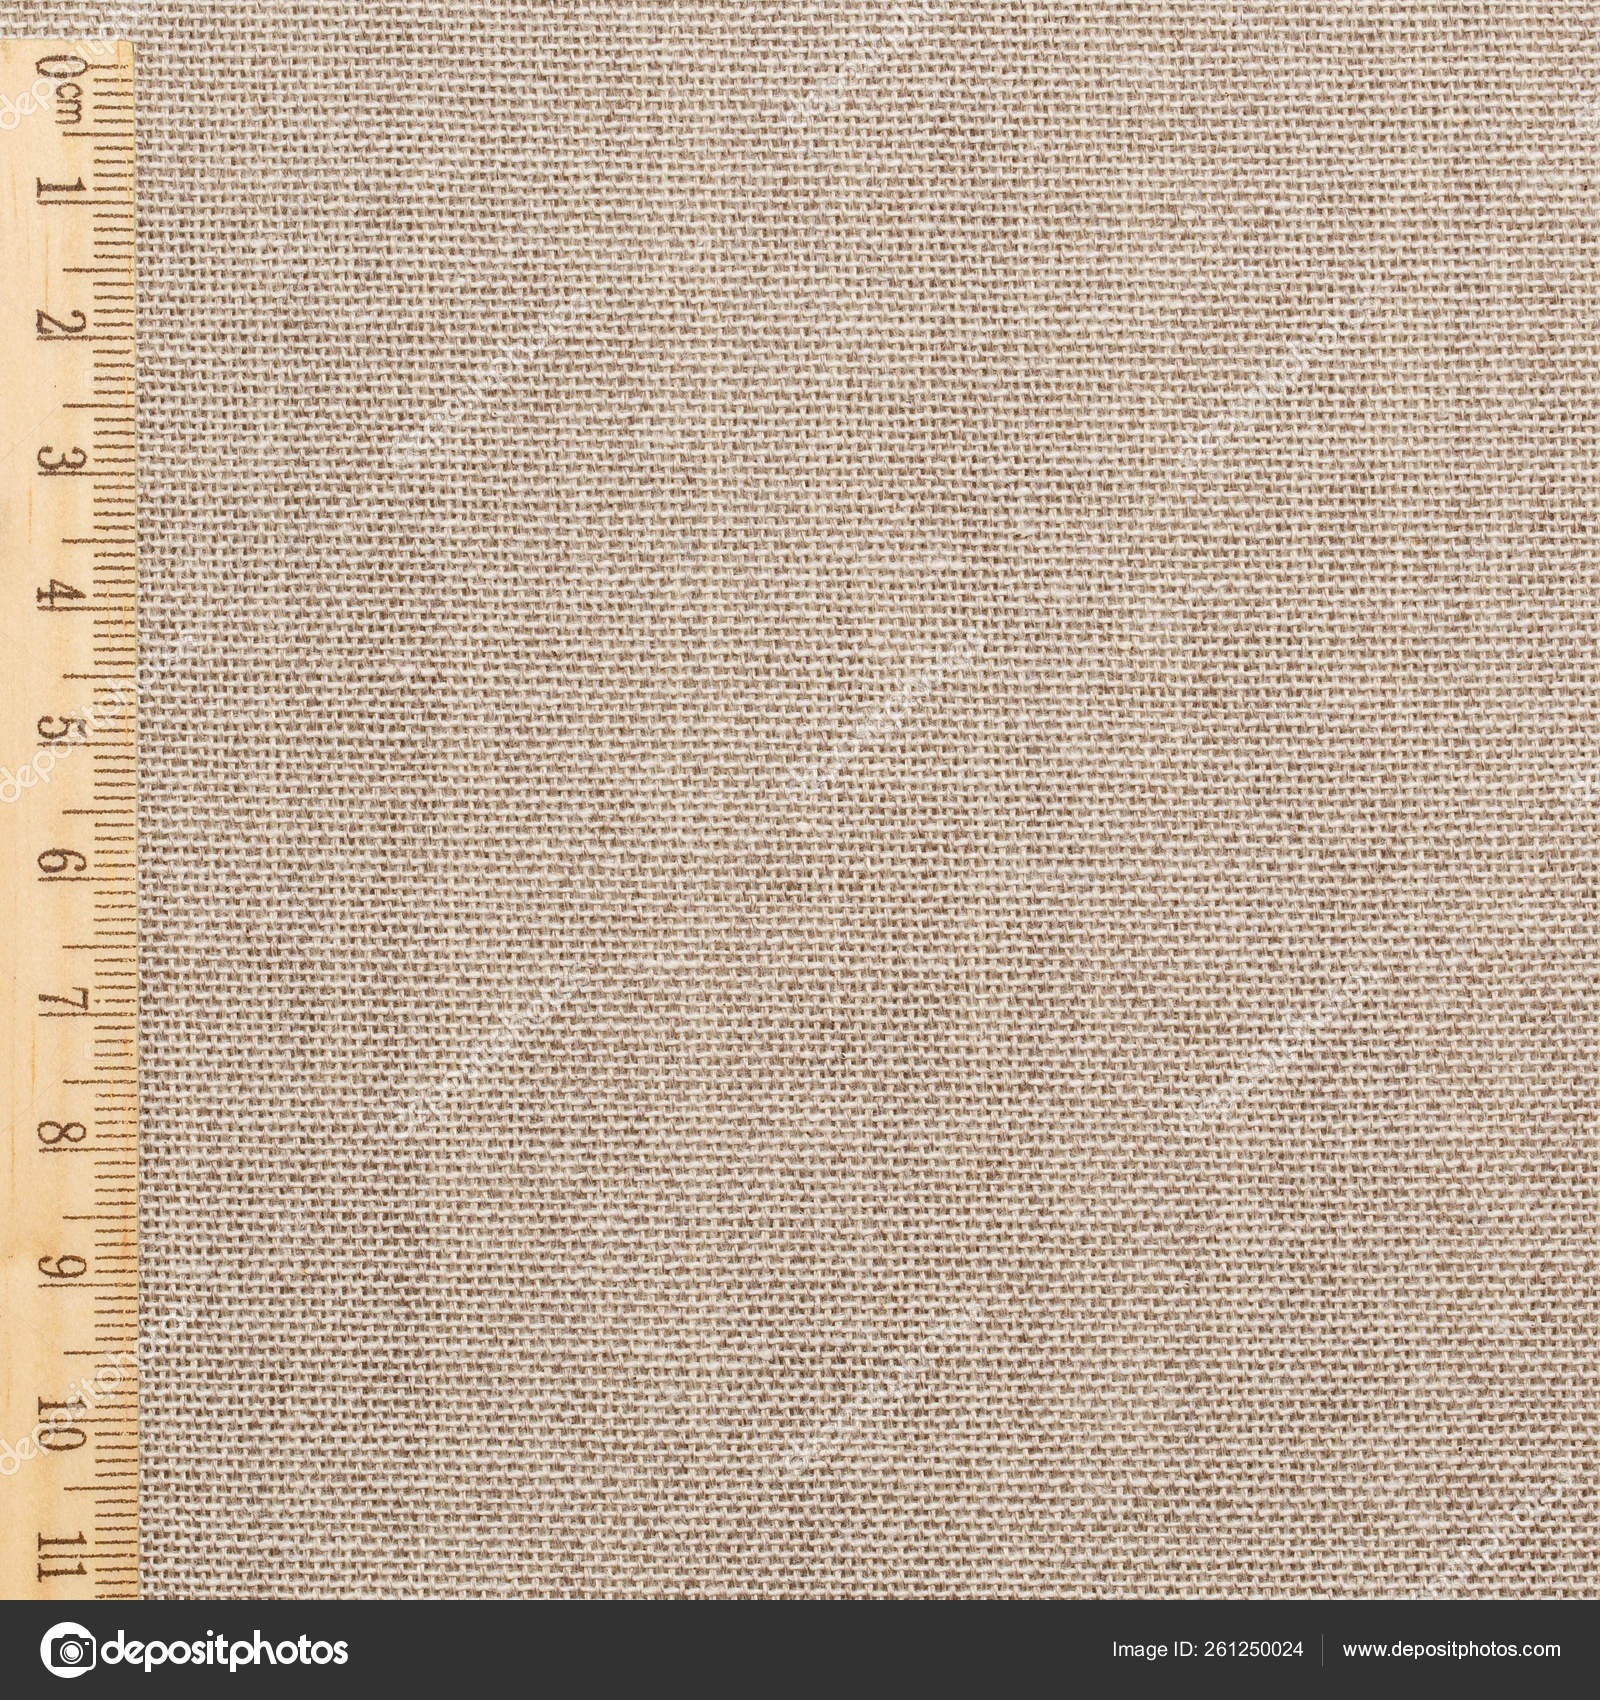 Soft linen fabric for sewing clothes  Superb appearance and